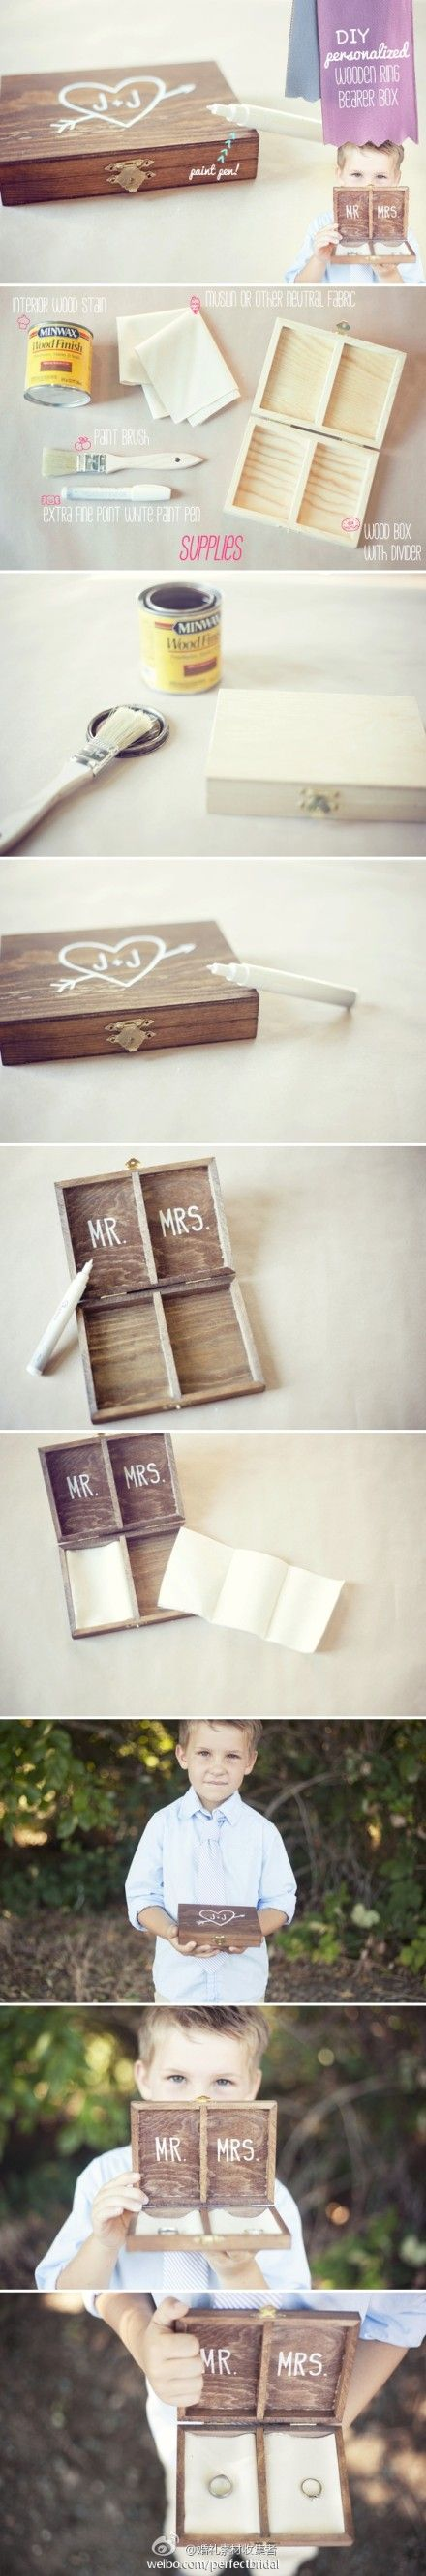 Ring box instead of ring bearer pillow